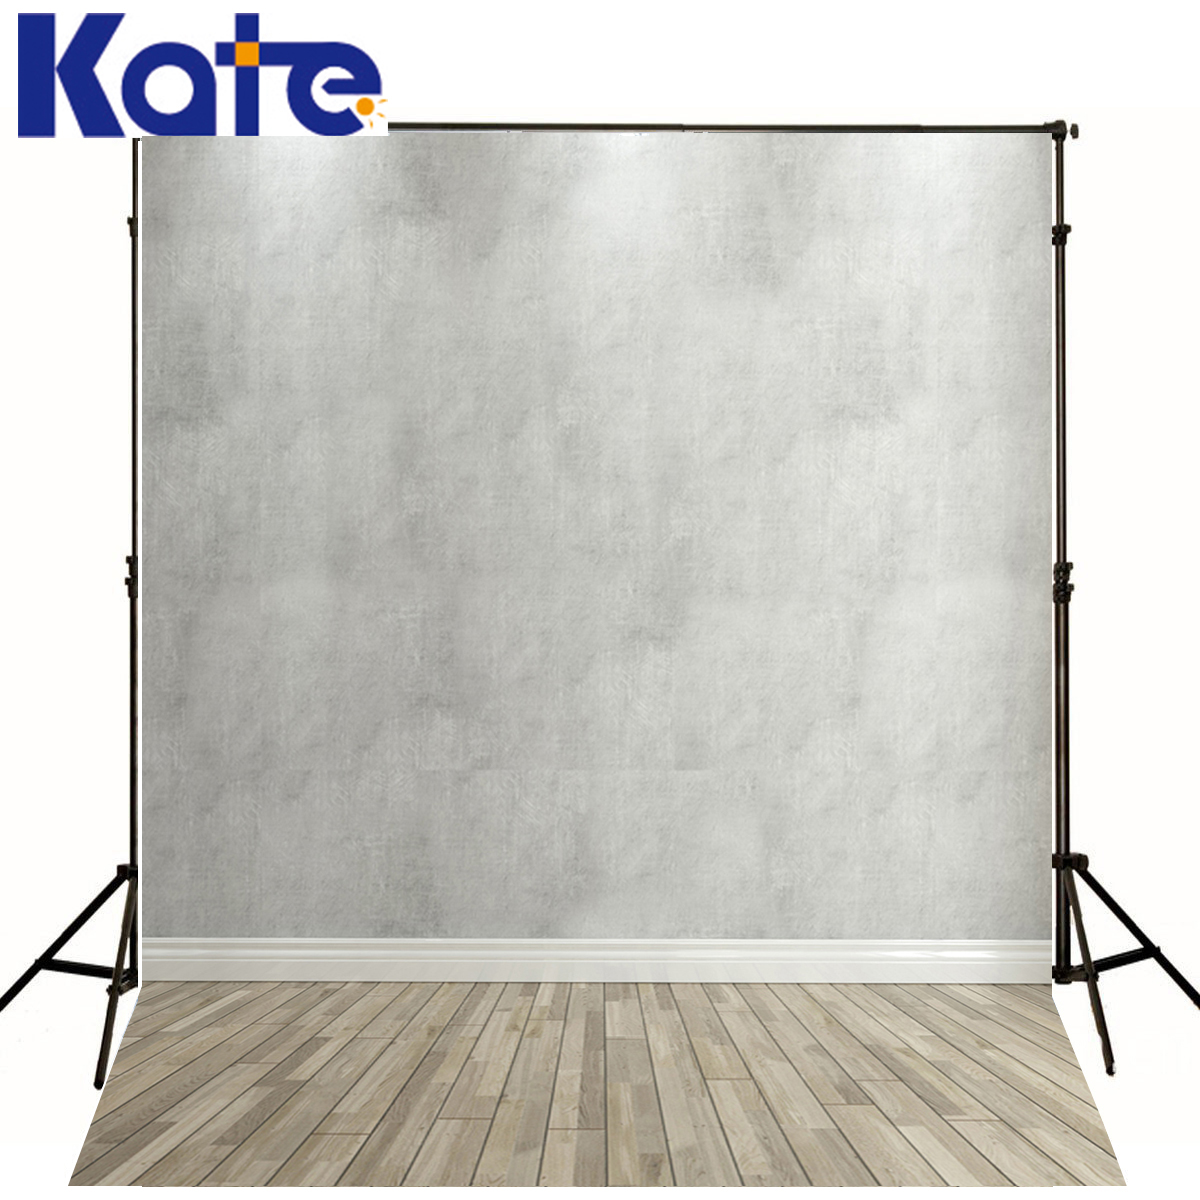 Kate Wood Background Photography Solid White Wall Backdrop Photo Wood Floor Photocall Backgrounds For Photo Studio J01676 цены